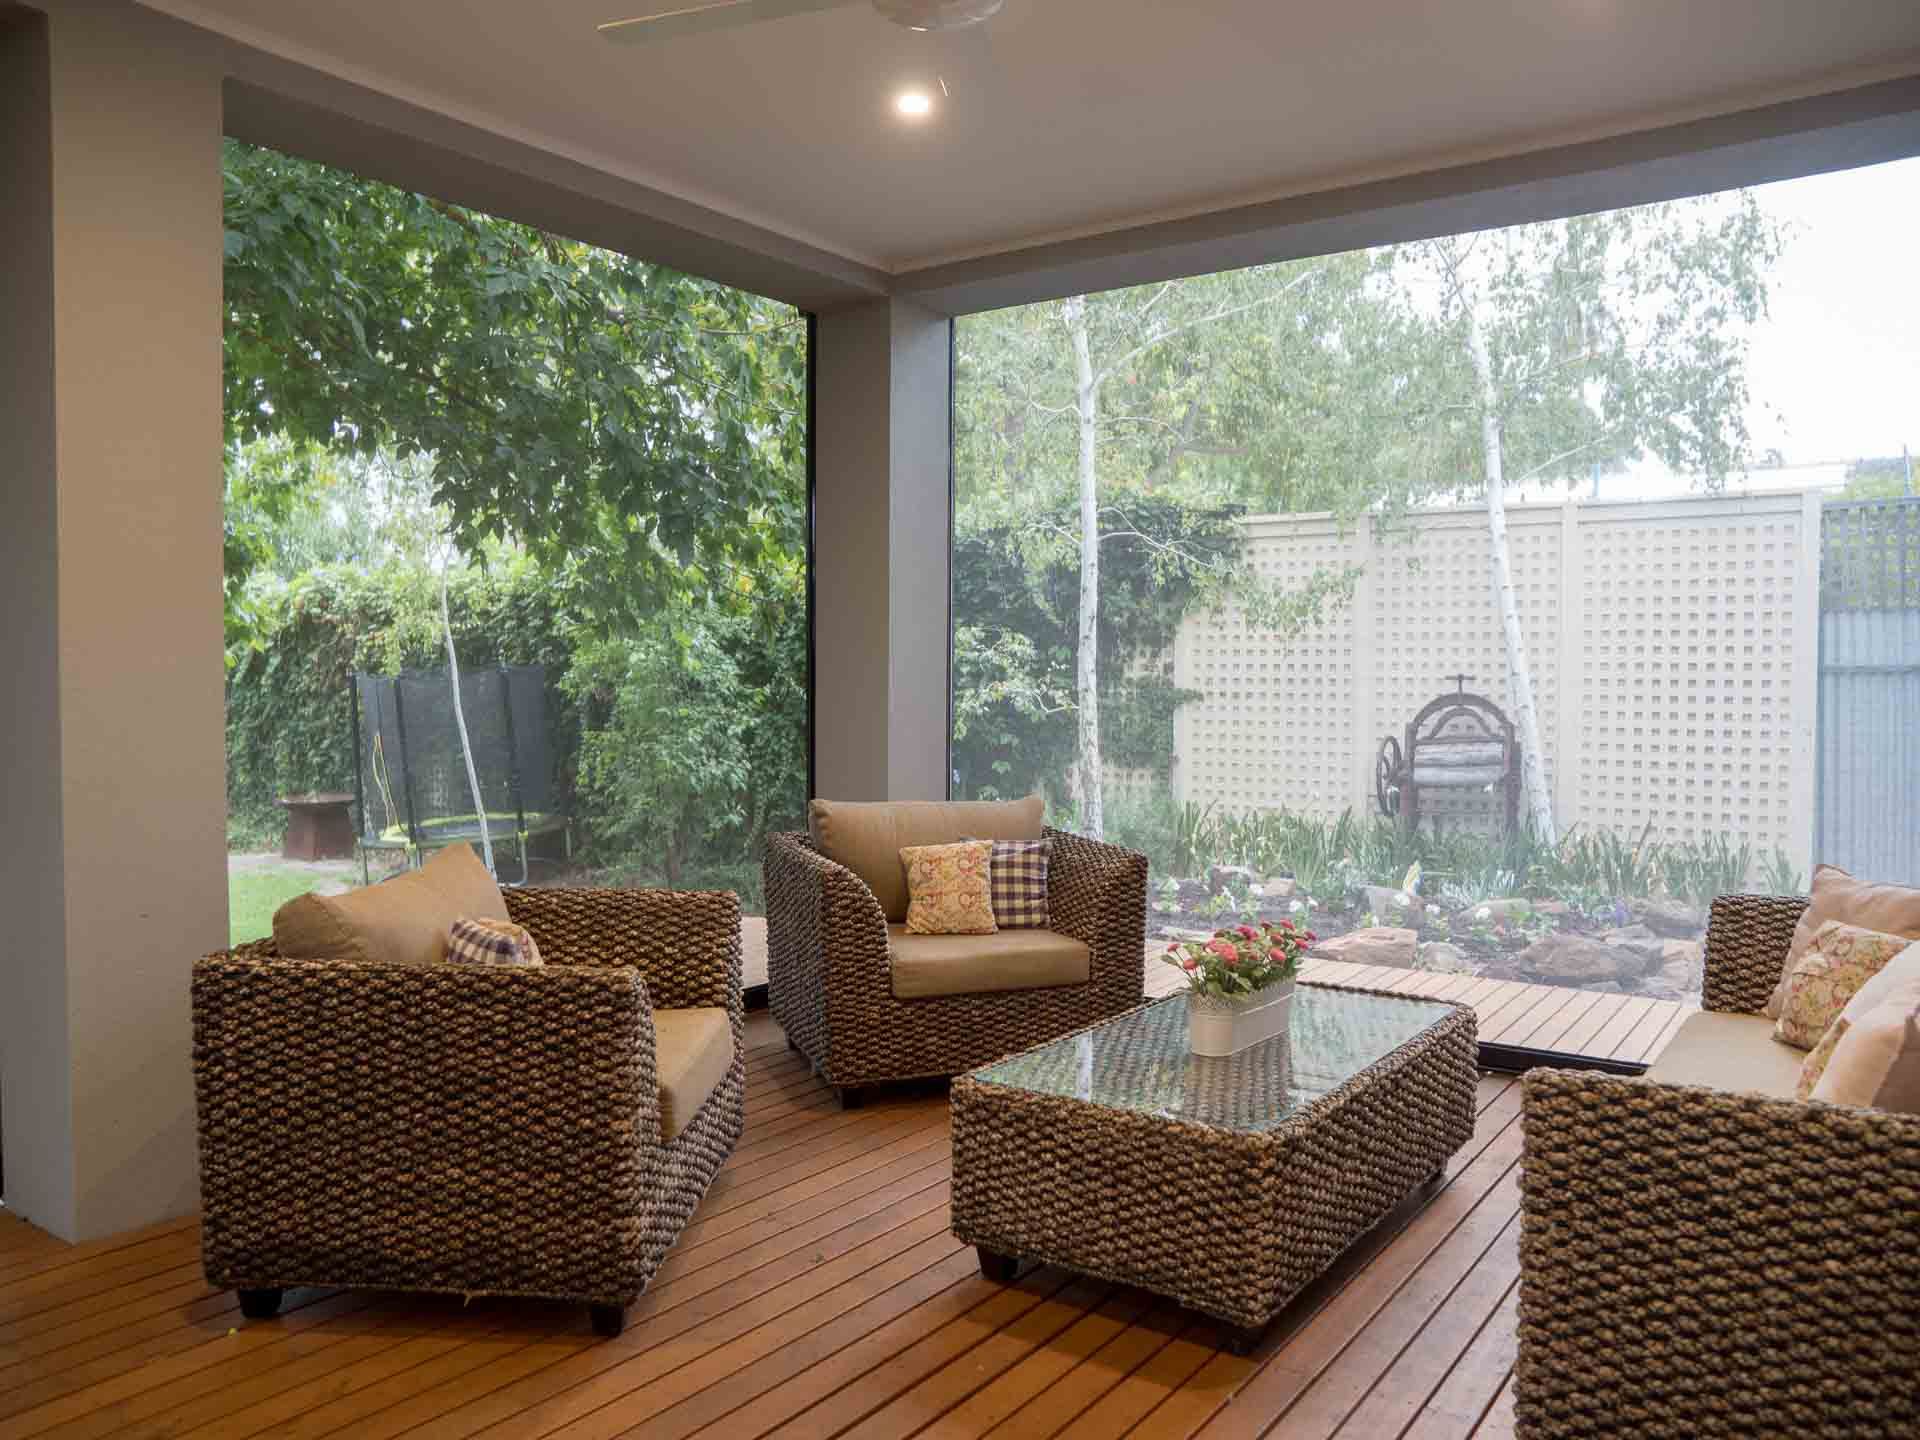 Protect Your Furniture From Damage with Shade Blinds - Shade blinds can protect upholstery and wood furniture, Australian Outdoor Living.